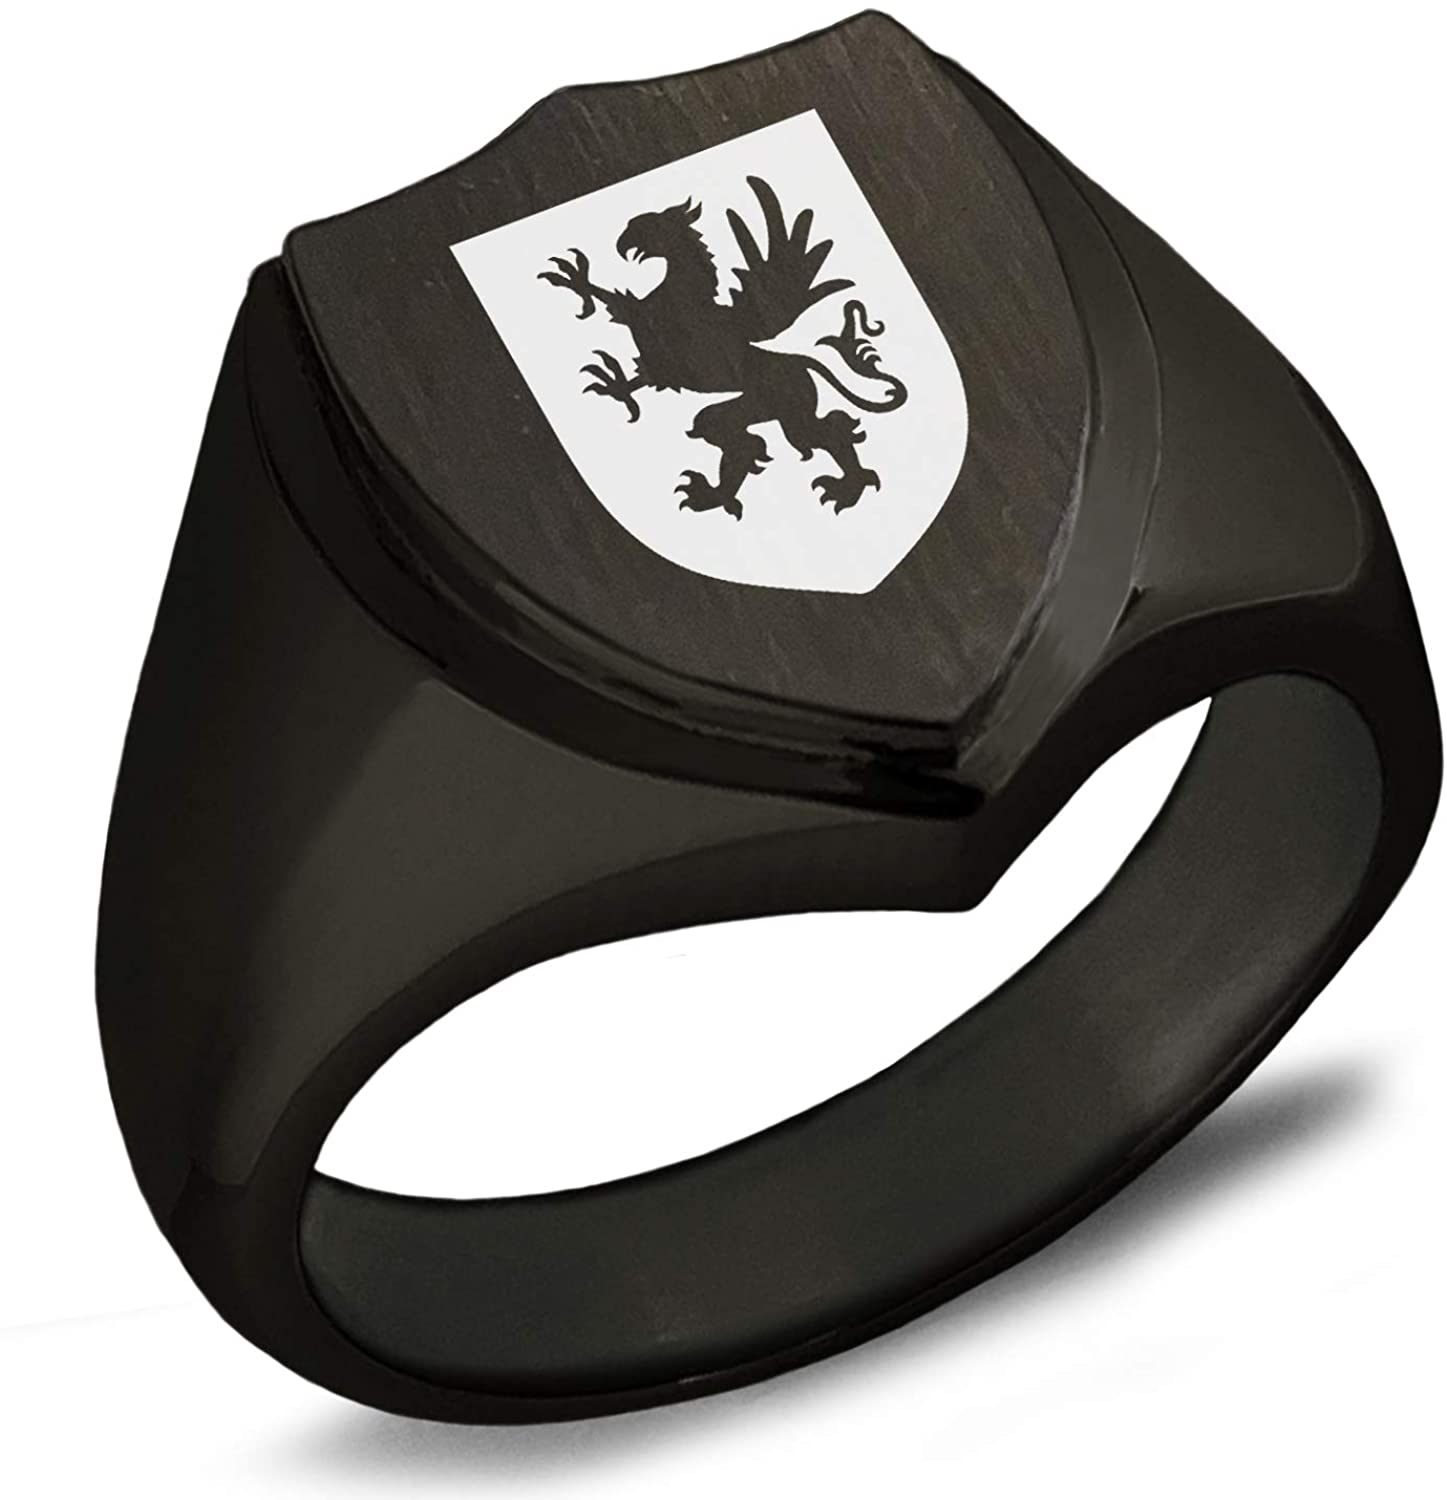 Tioneer Gunmetal Gray Stainless Steel Griffin Valor Coat of Arms Shield Biker Style Polished Ring, Size 10.5